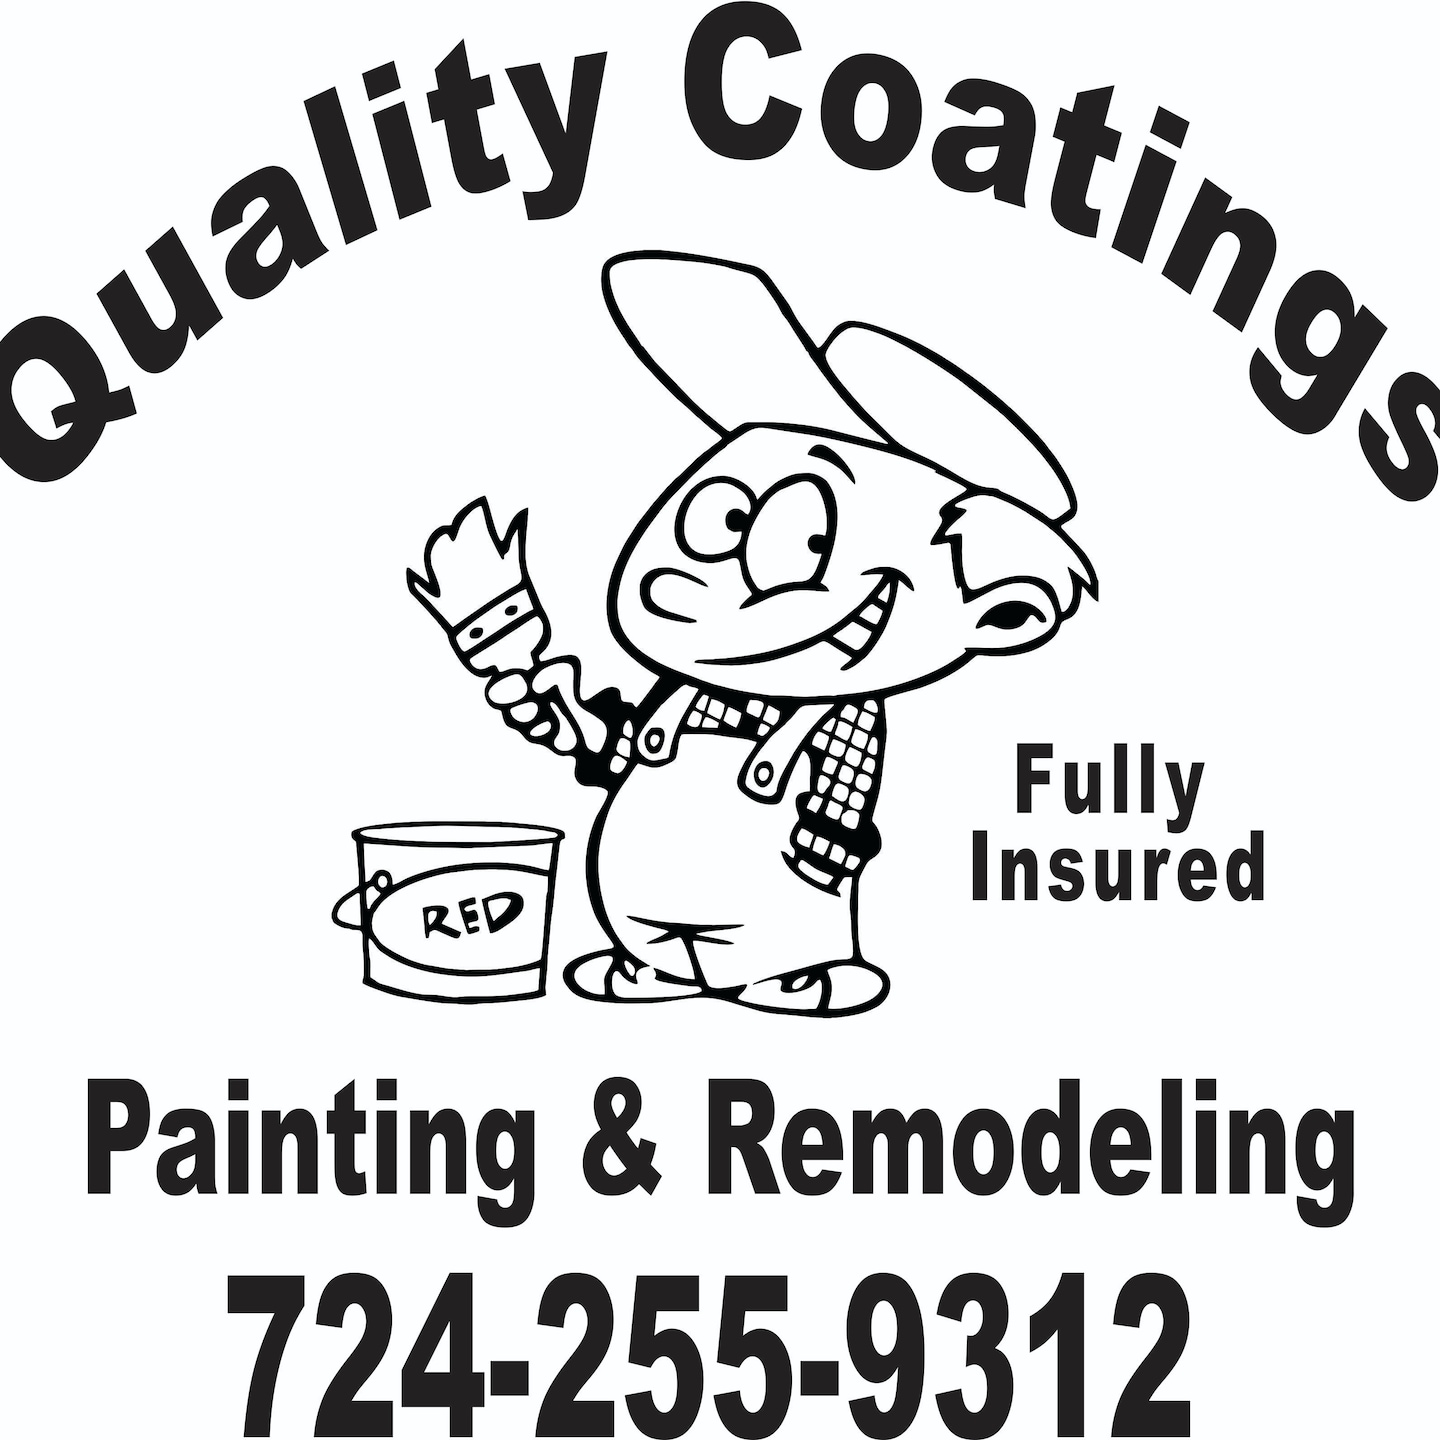 Quality Coatings